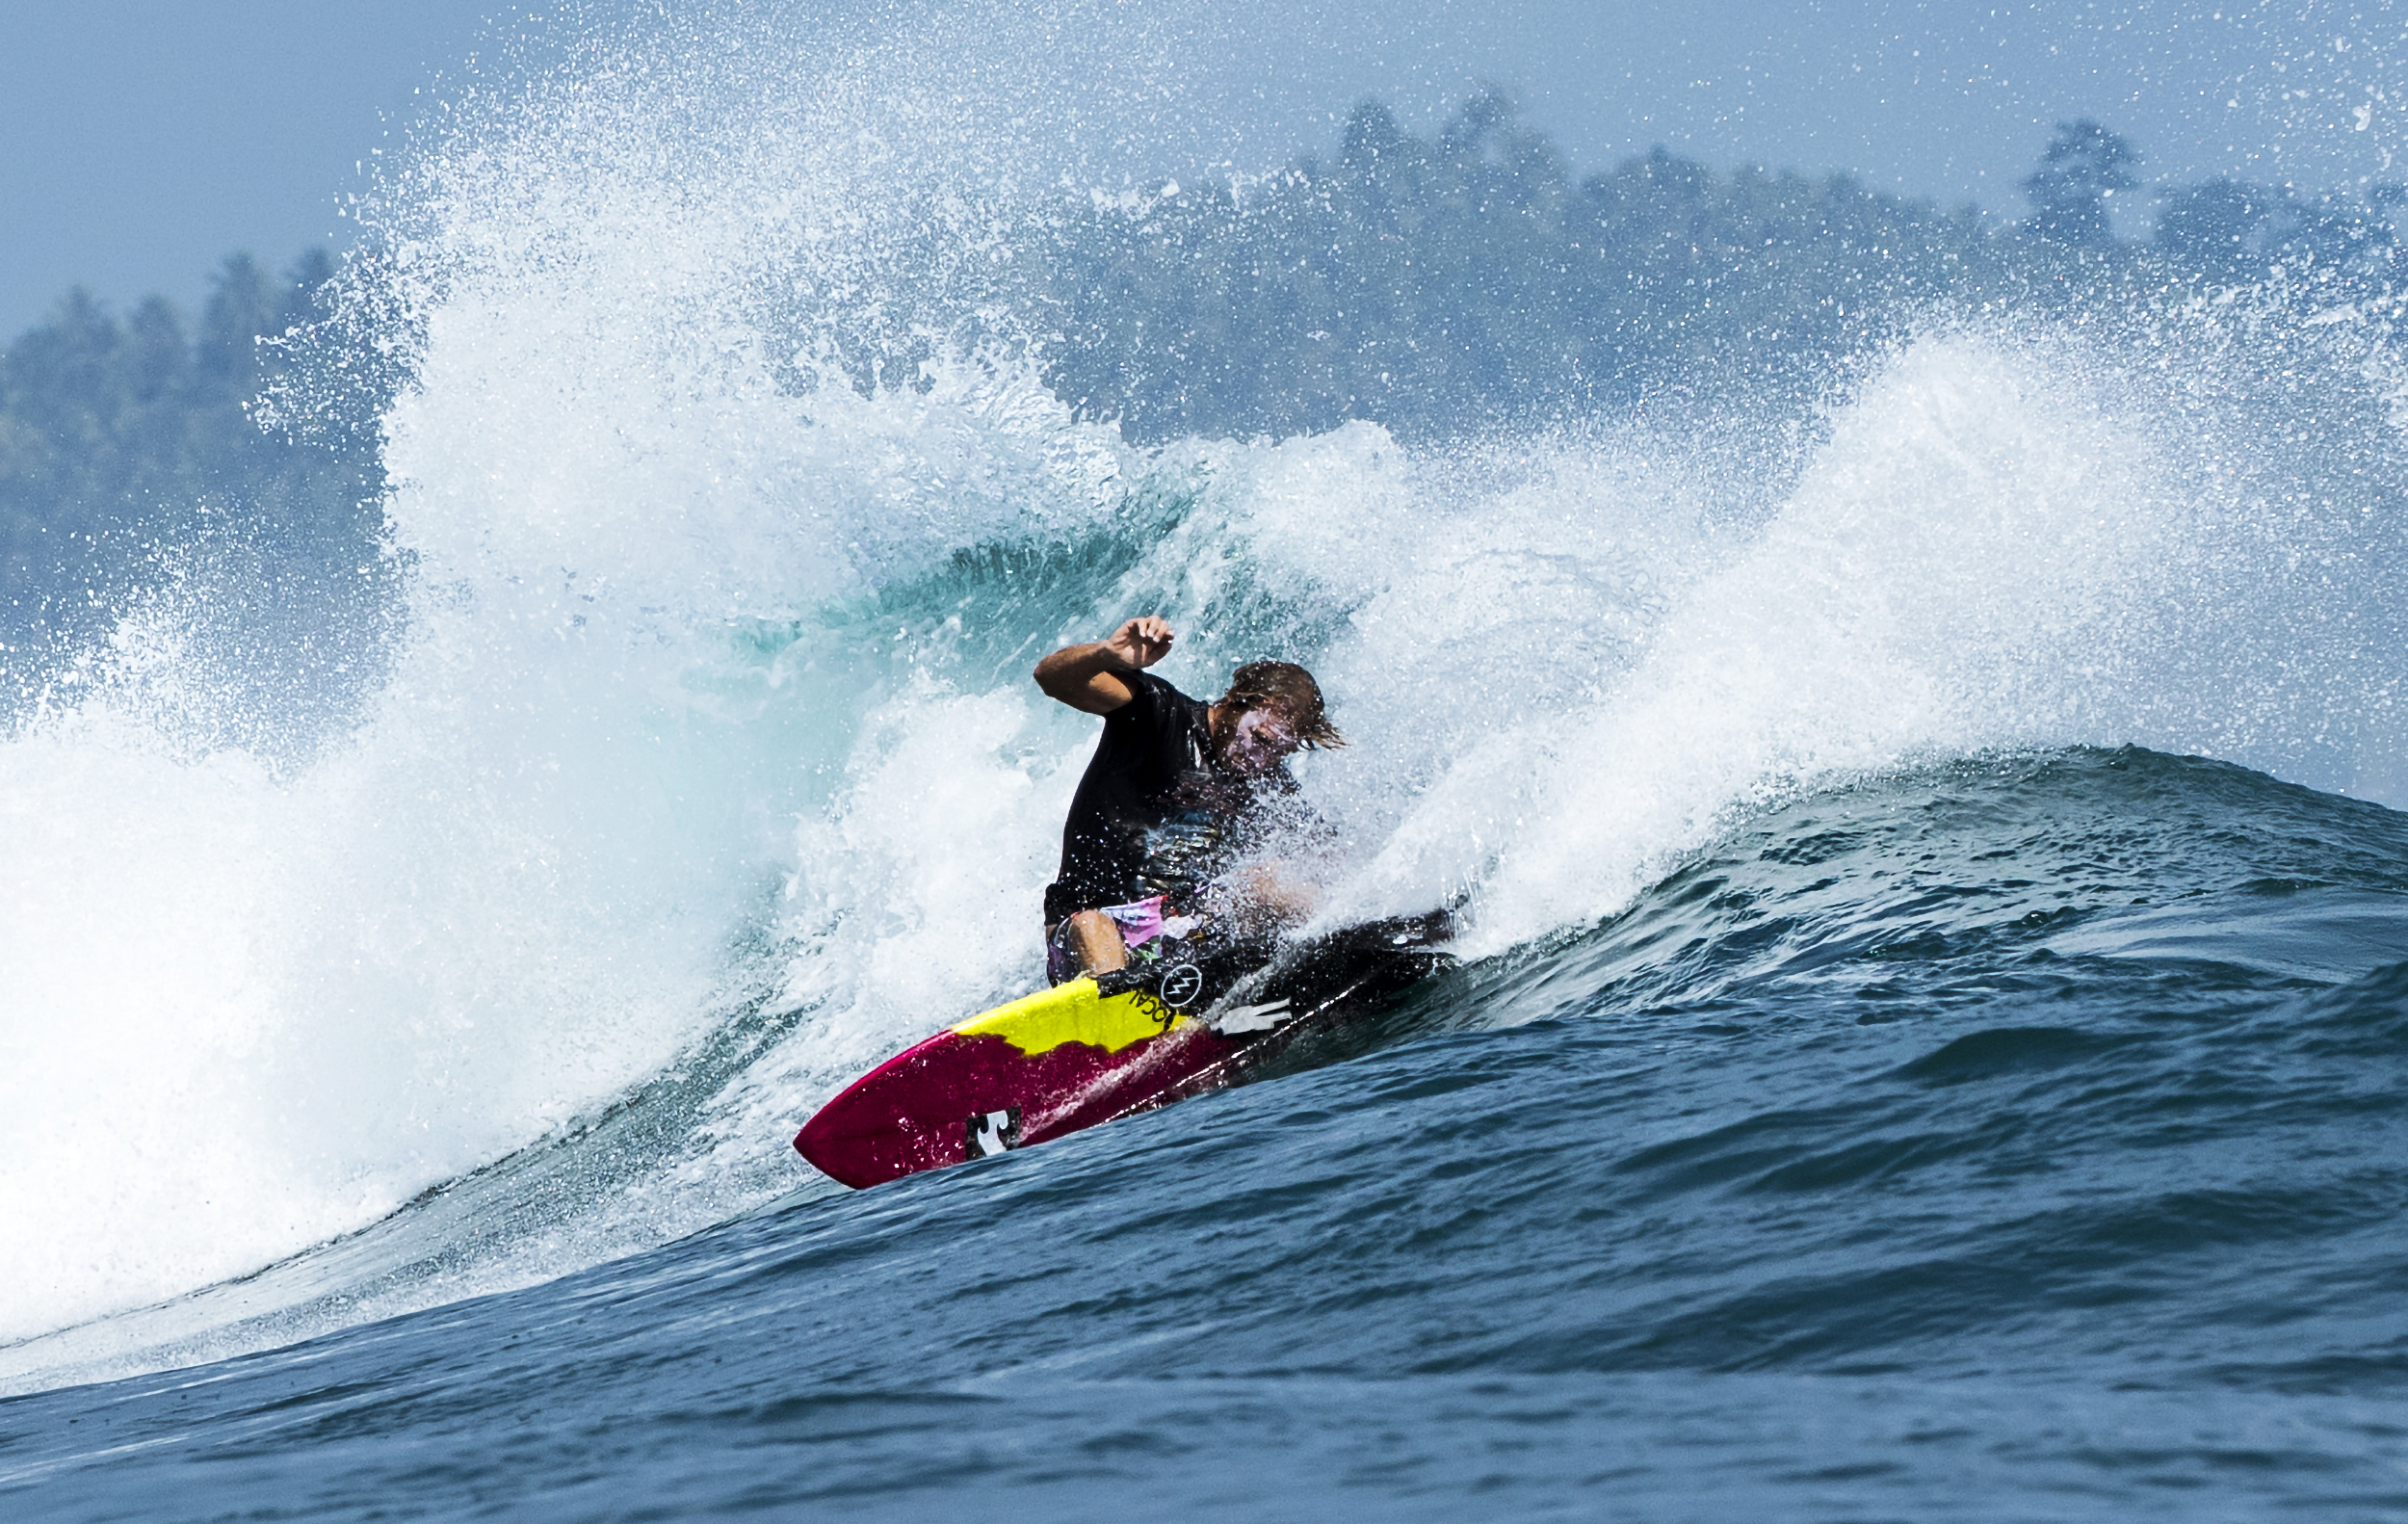 Surfing Videos Latest Surf Video News Clips Photos At